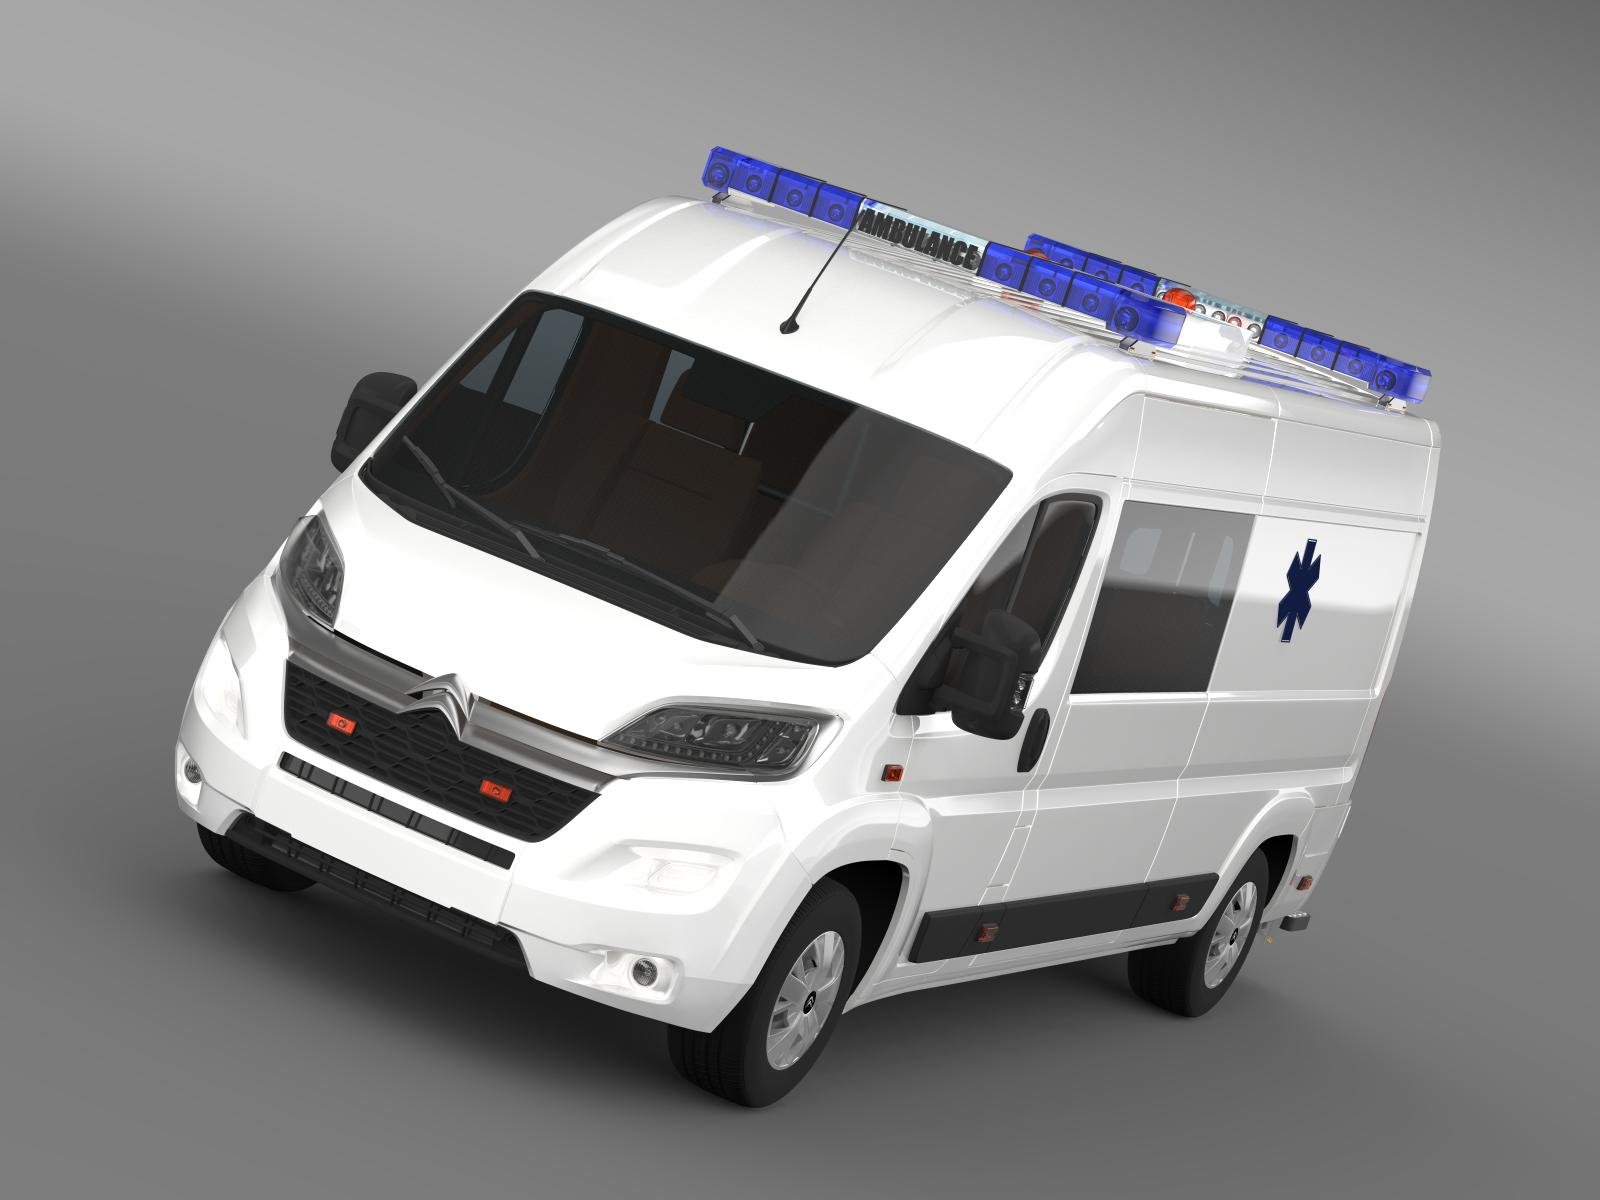 citroen jumper ambulanta 2015 3d model 3ds max fbx c4d lwo ma mb hrc xsi obj 203871